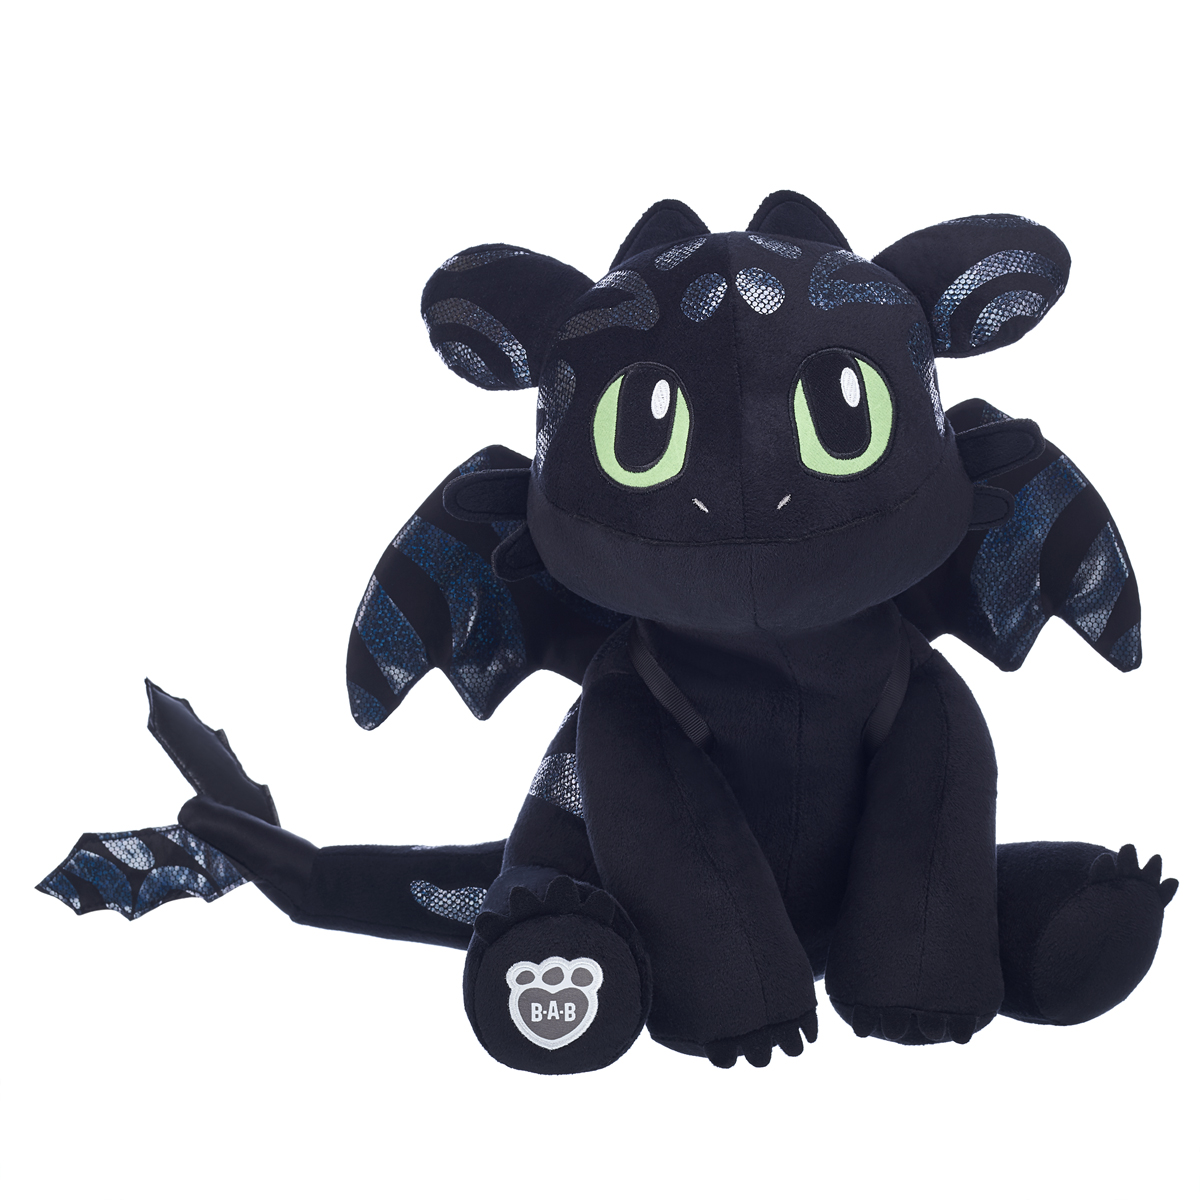 Black Cat Stuffed Animal, Toothless Plush Dragon Shop Toothless Soft Toys At Build A Bear